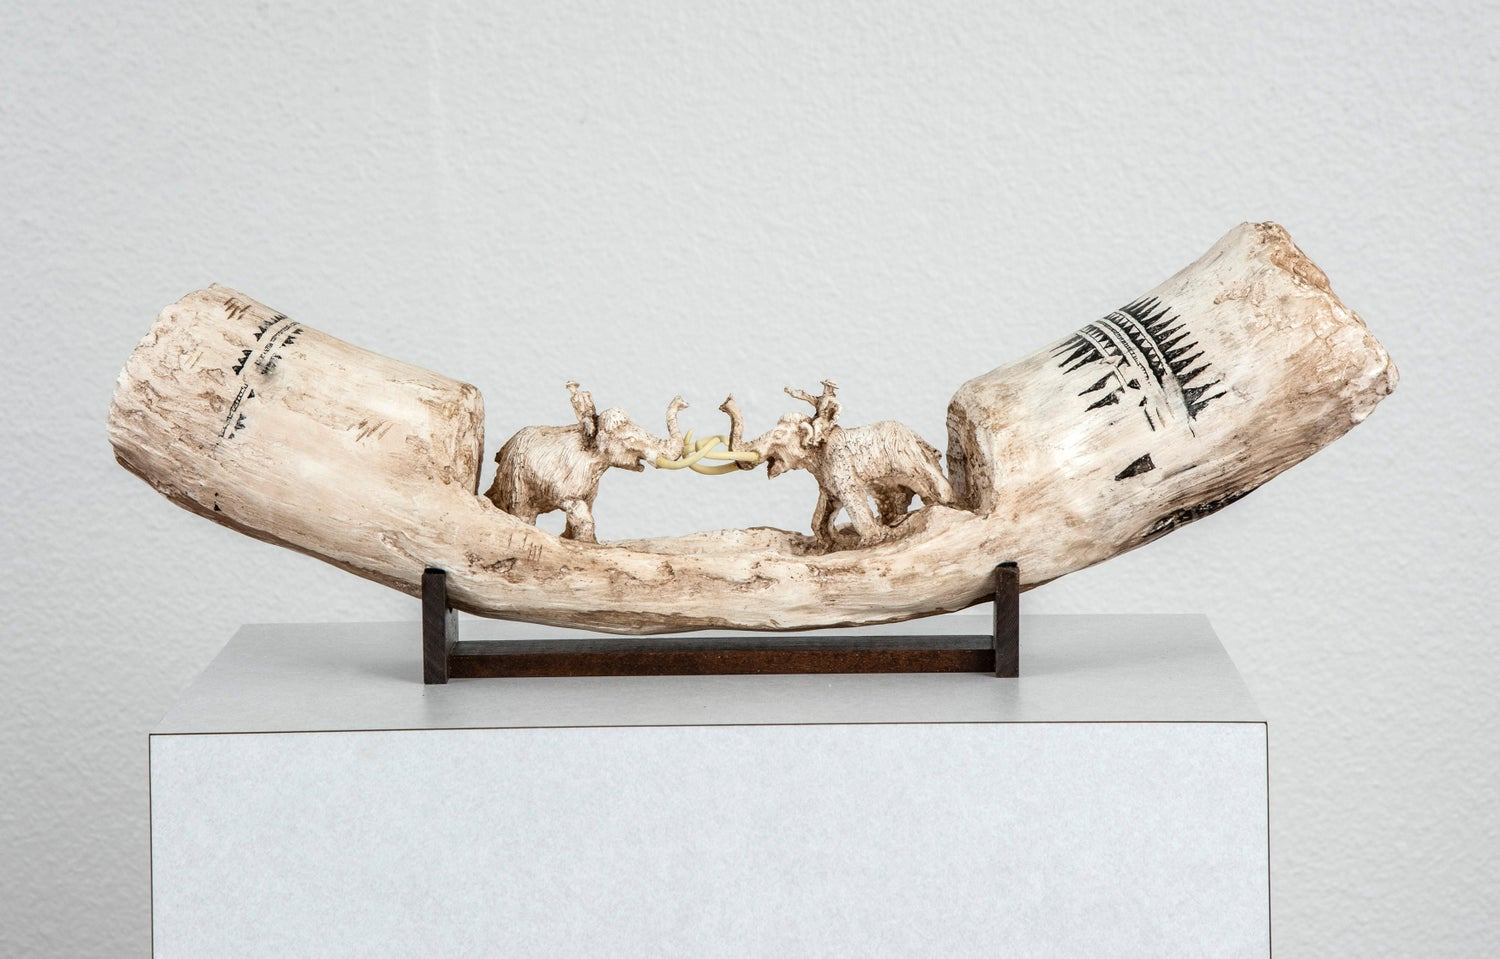 Tusk Sculpture: 'Fighting Mammoths Carved Mammoth Tusk'